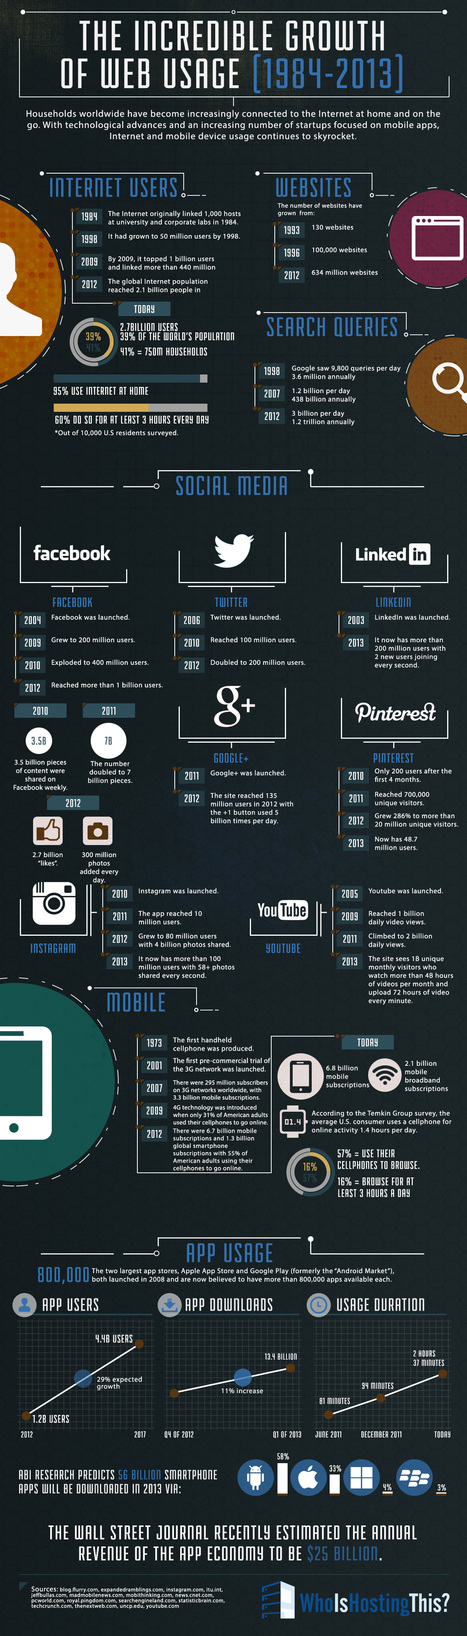 Infographic: The Incredible Growth of Web Usage [1984-2013] | Personal Branding and Professional networks - @Socialfave @TheMisterFavor @TOOLS_BOX_DEV @TOOLS_BOX_EUR @P_TREBAUL @DNAMktg @DNADatas @BRETAGNE_CHARME @TOOLS_BOX_IND @TOOLS_BOX_ITA @TOOLS_BOX_UK @TOOLS_BOX_ESP @TOOLS_BOX_GER @TOOLS_BOX_DEV @TOOLS_BOX_BRA | Scoop.it